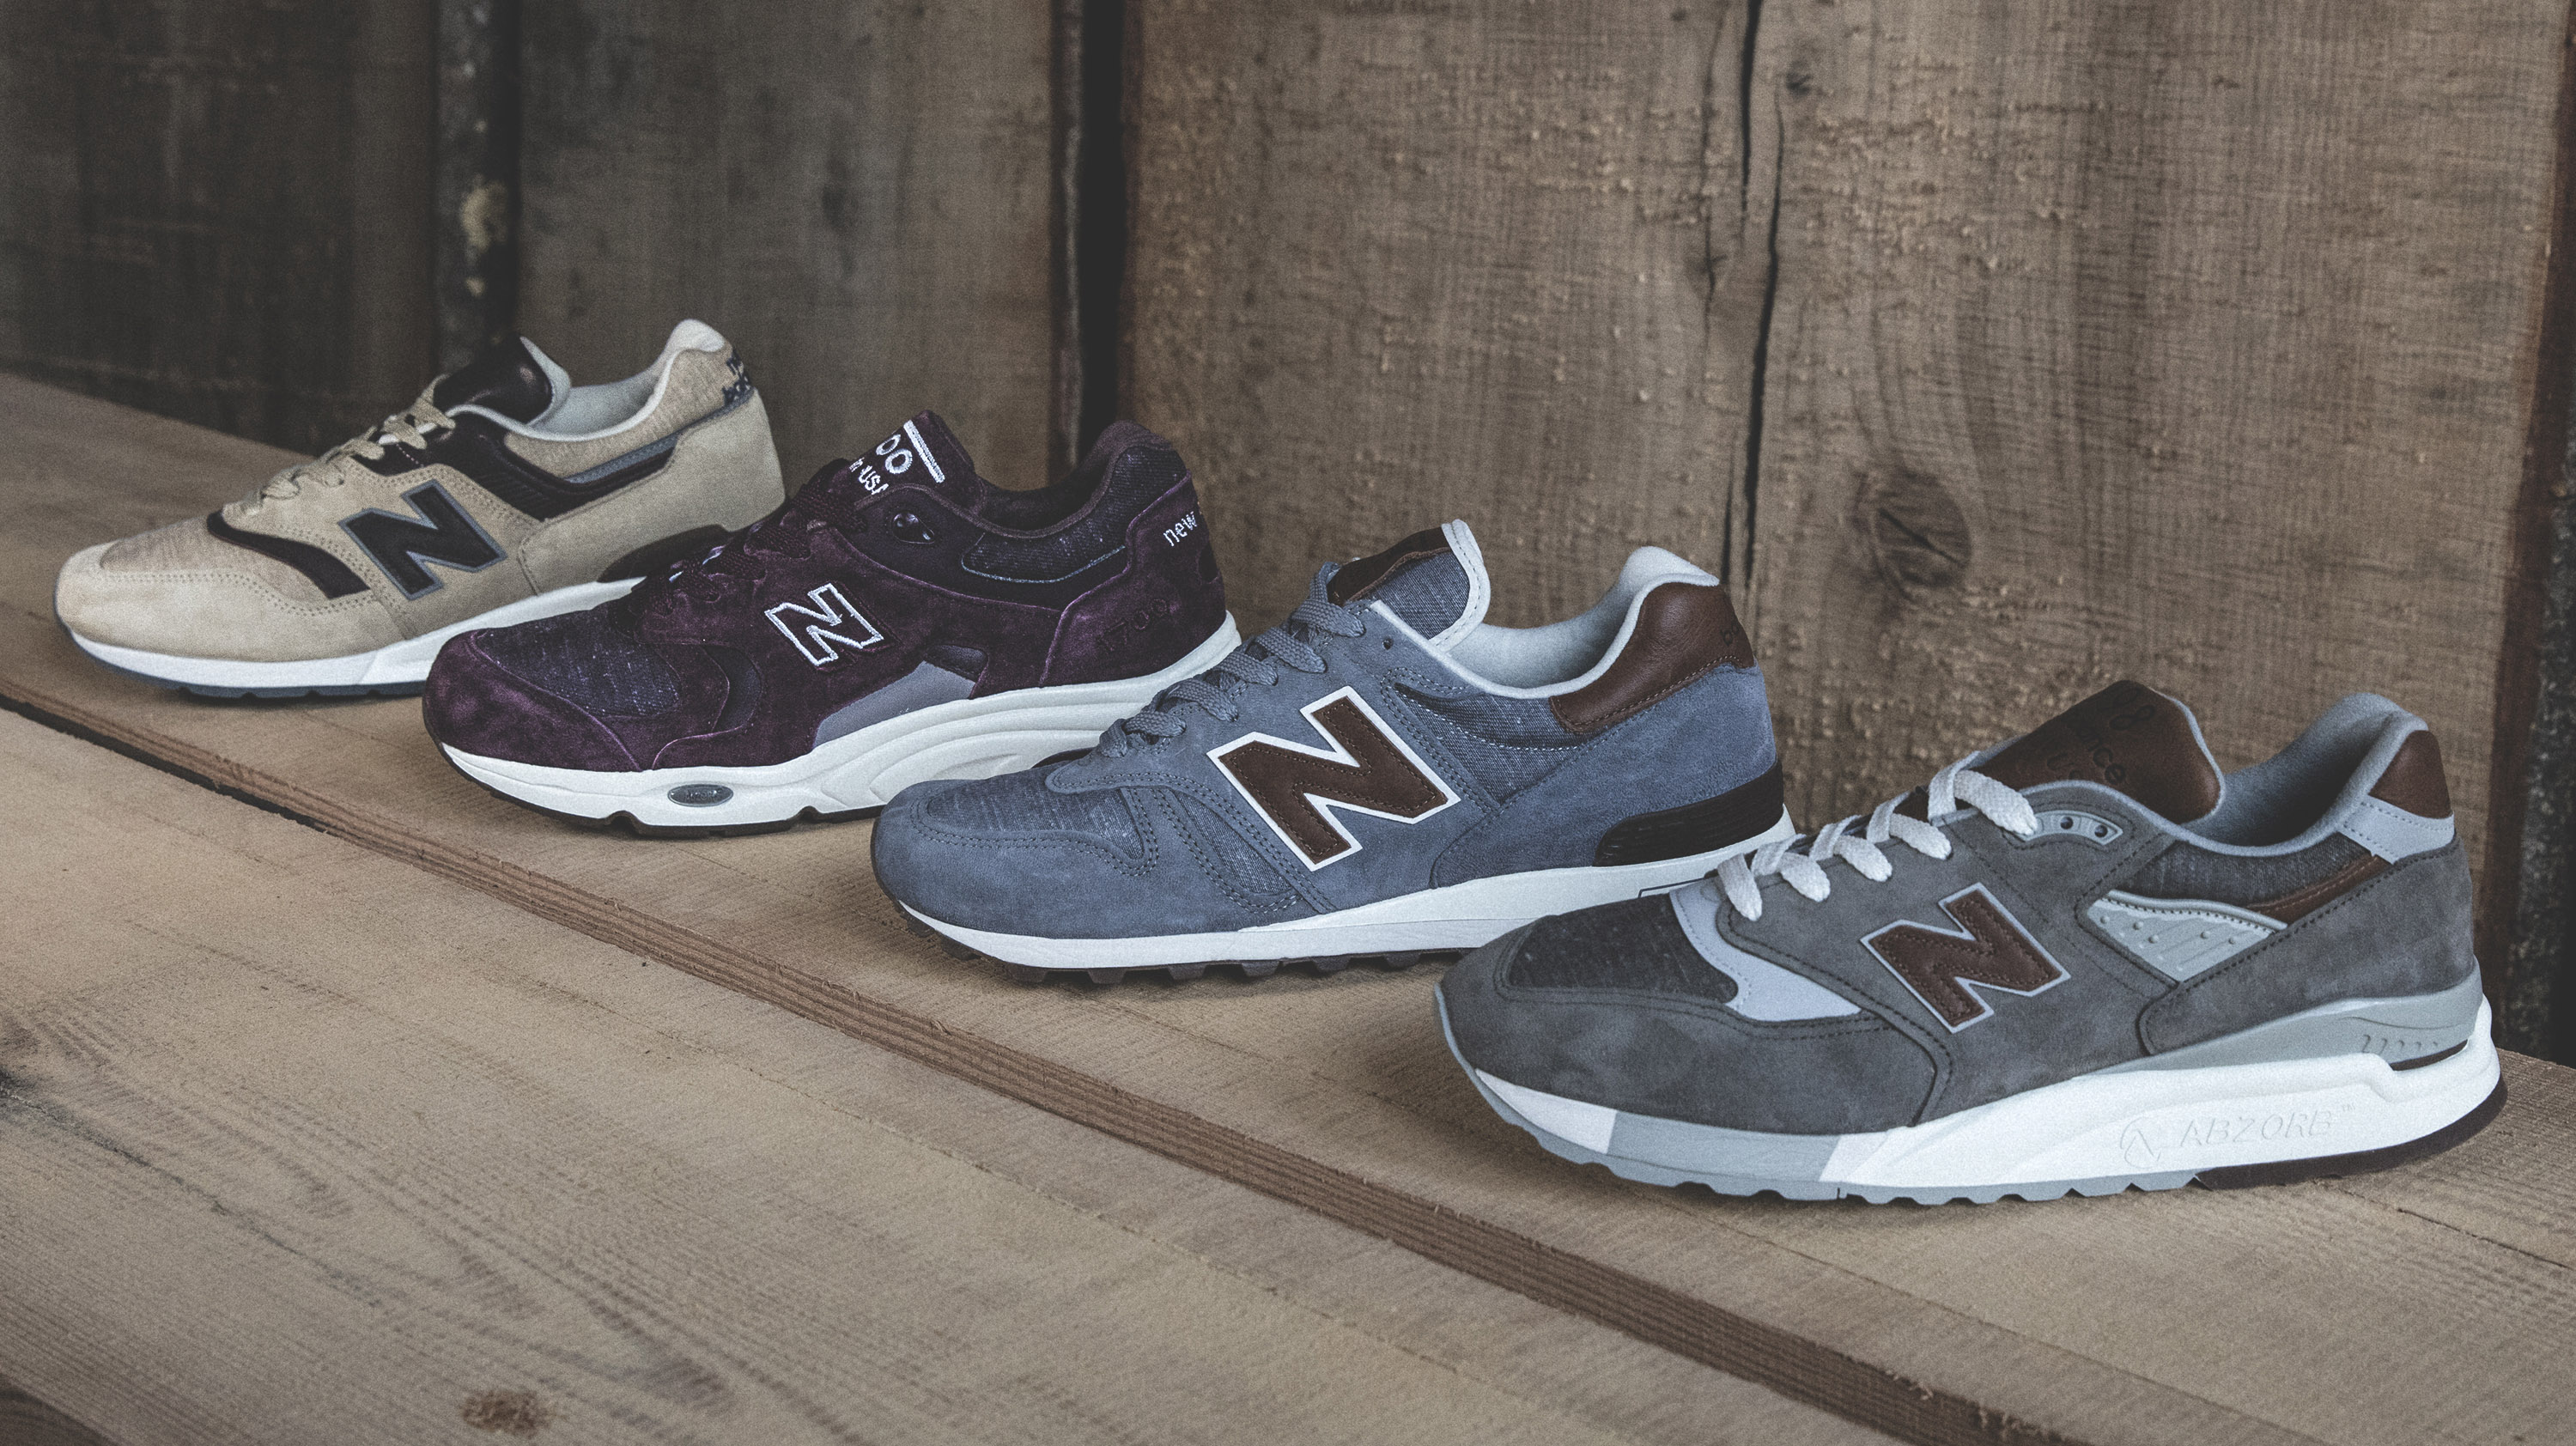 nb_MiUSA_product_ALL_1_imageonly